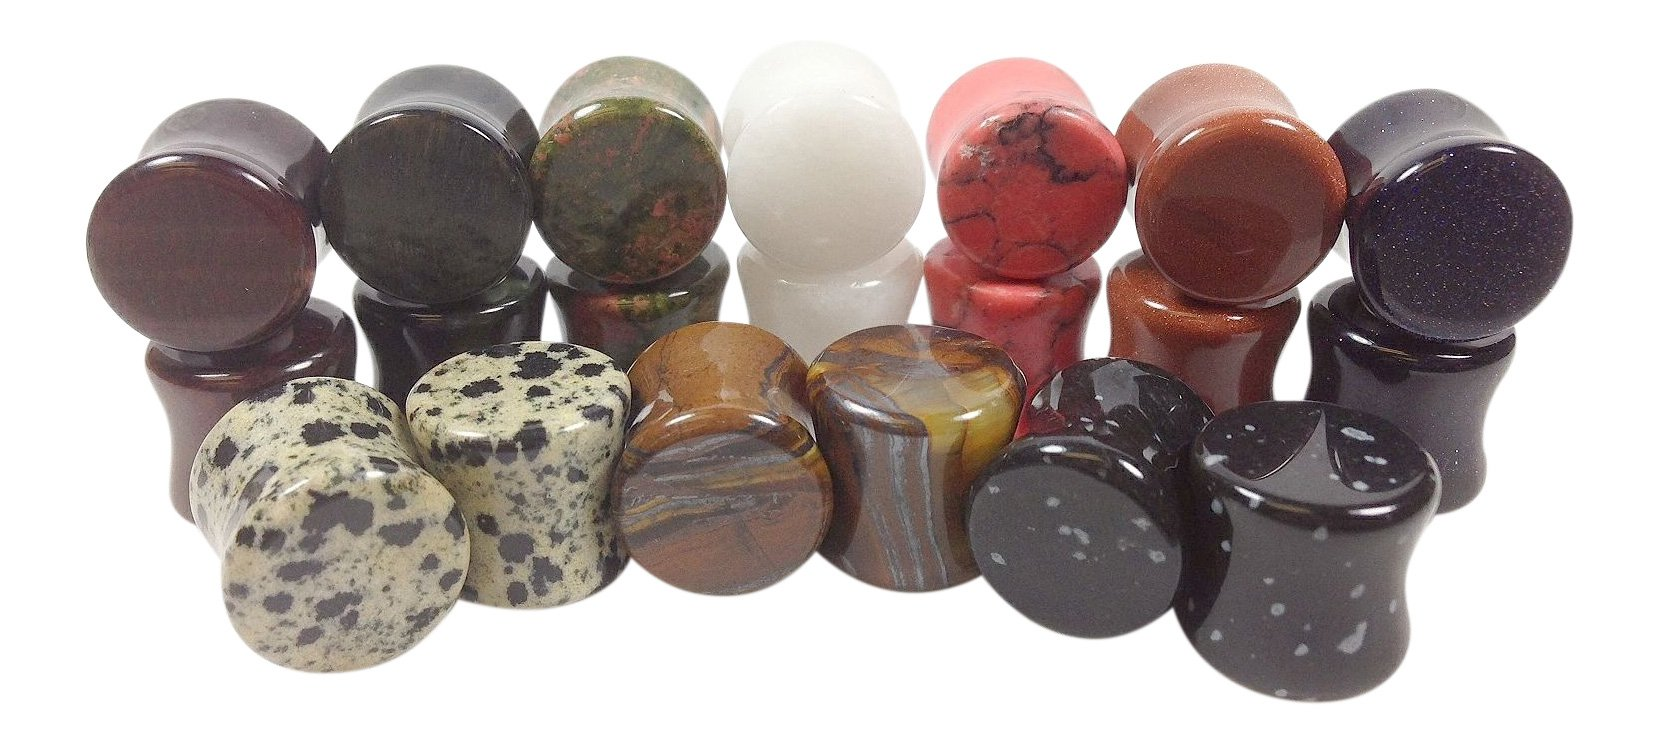 Lobal Domination -All 10 Pair- Stone Plugs Organic Double Flare Ear Gauges Body Jewelry (lot 2) (00g (10mm))